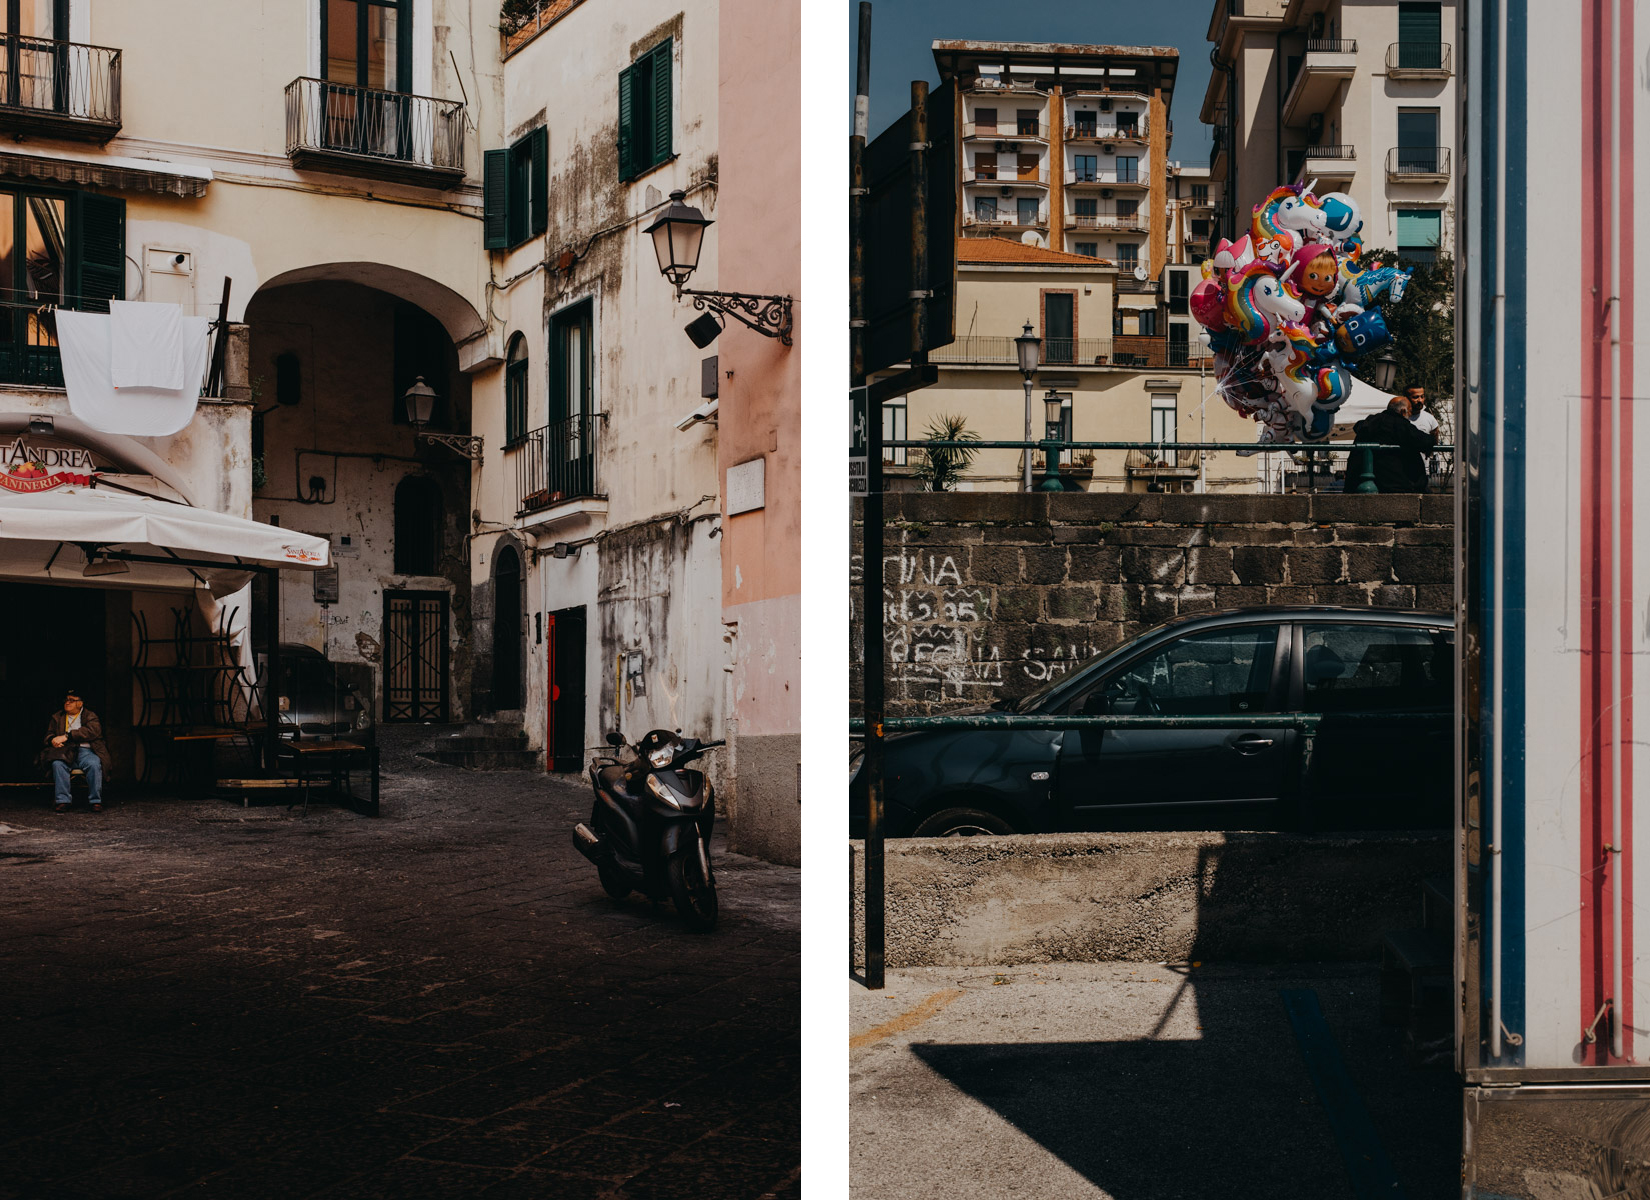 street photograaphy showing corners in the city of Salerno